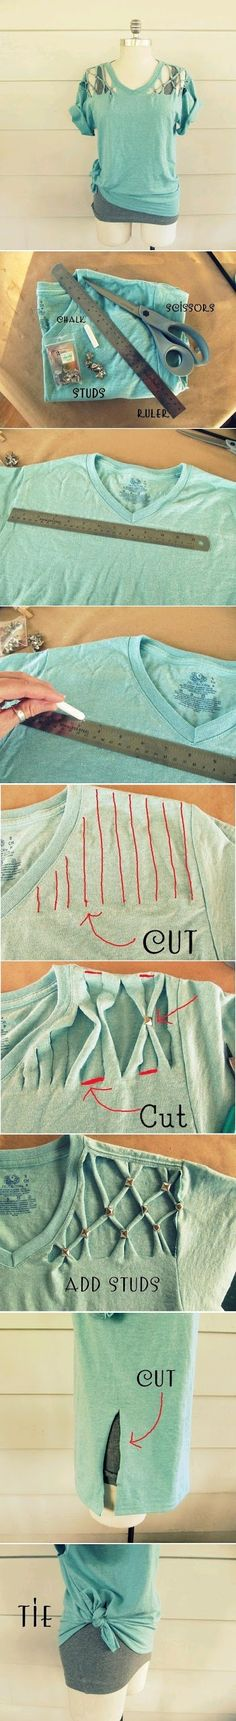 How To Make a Studded T-Shirt